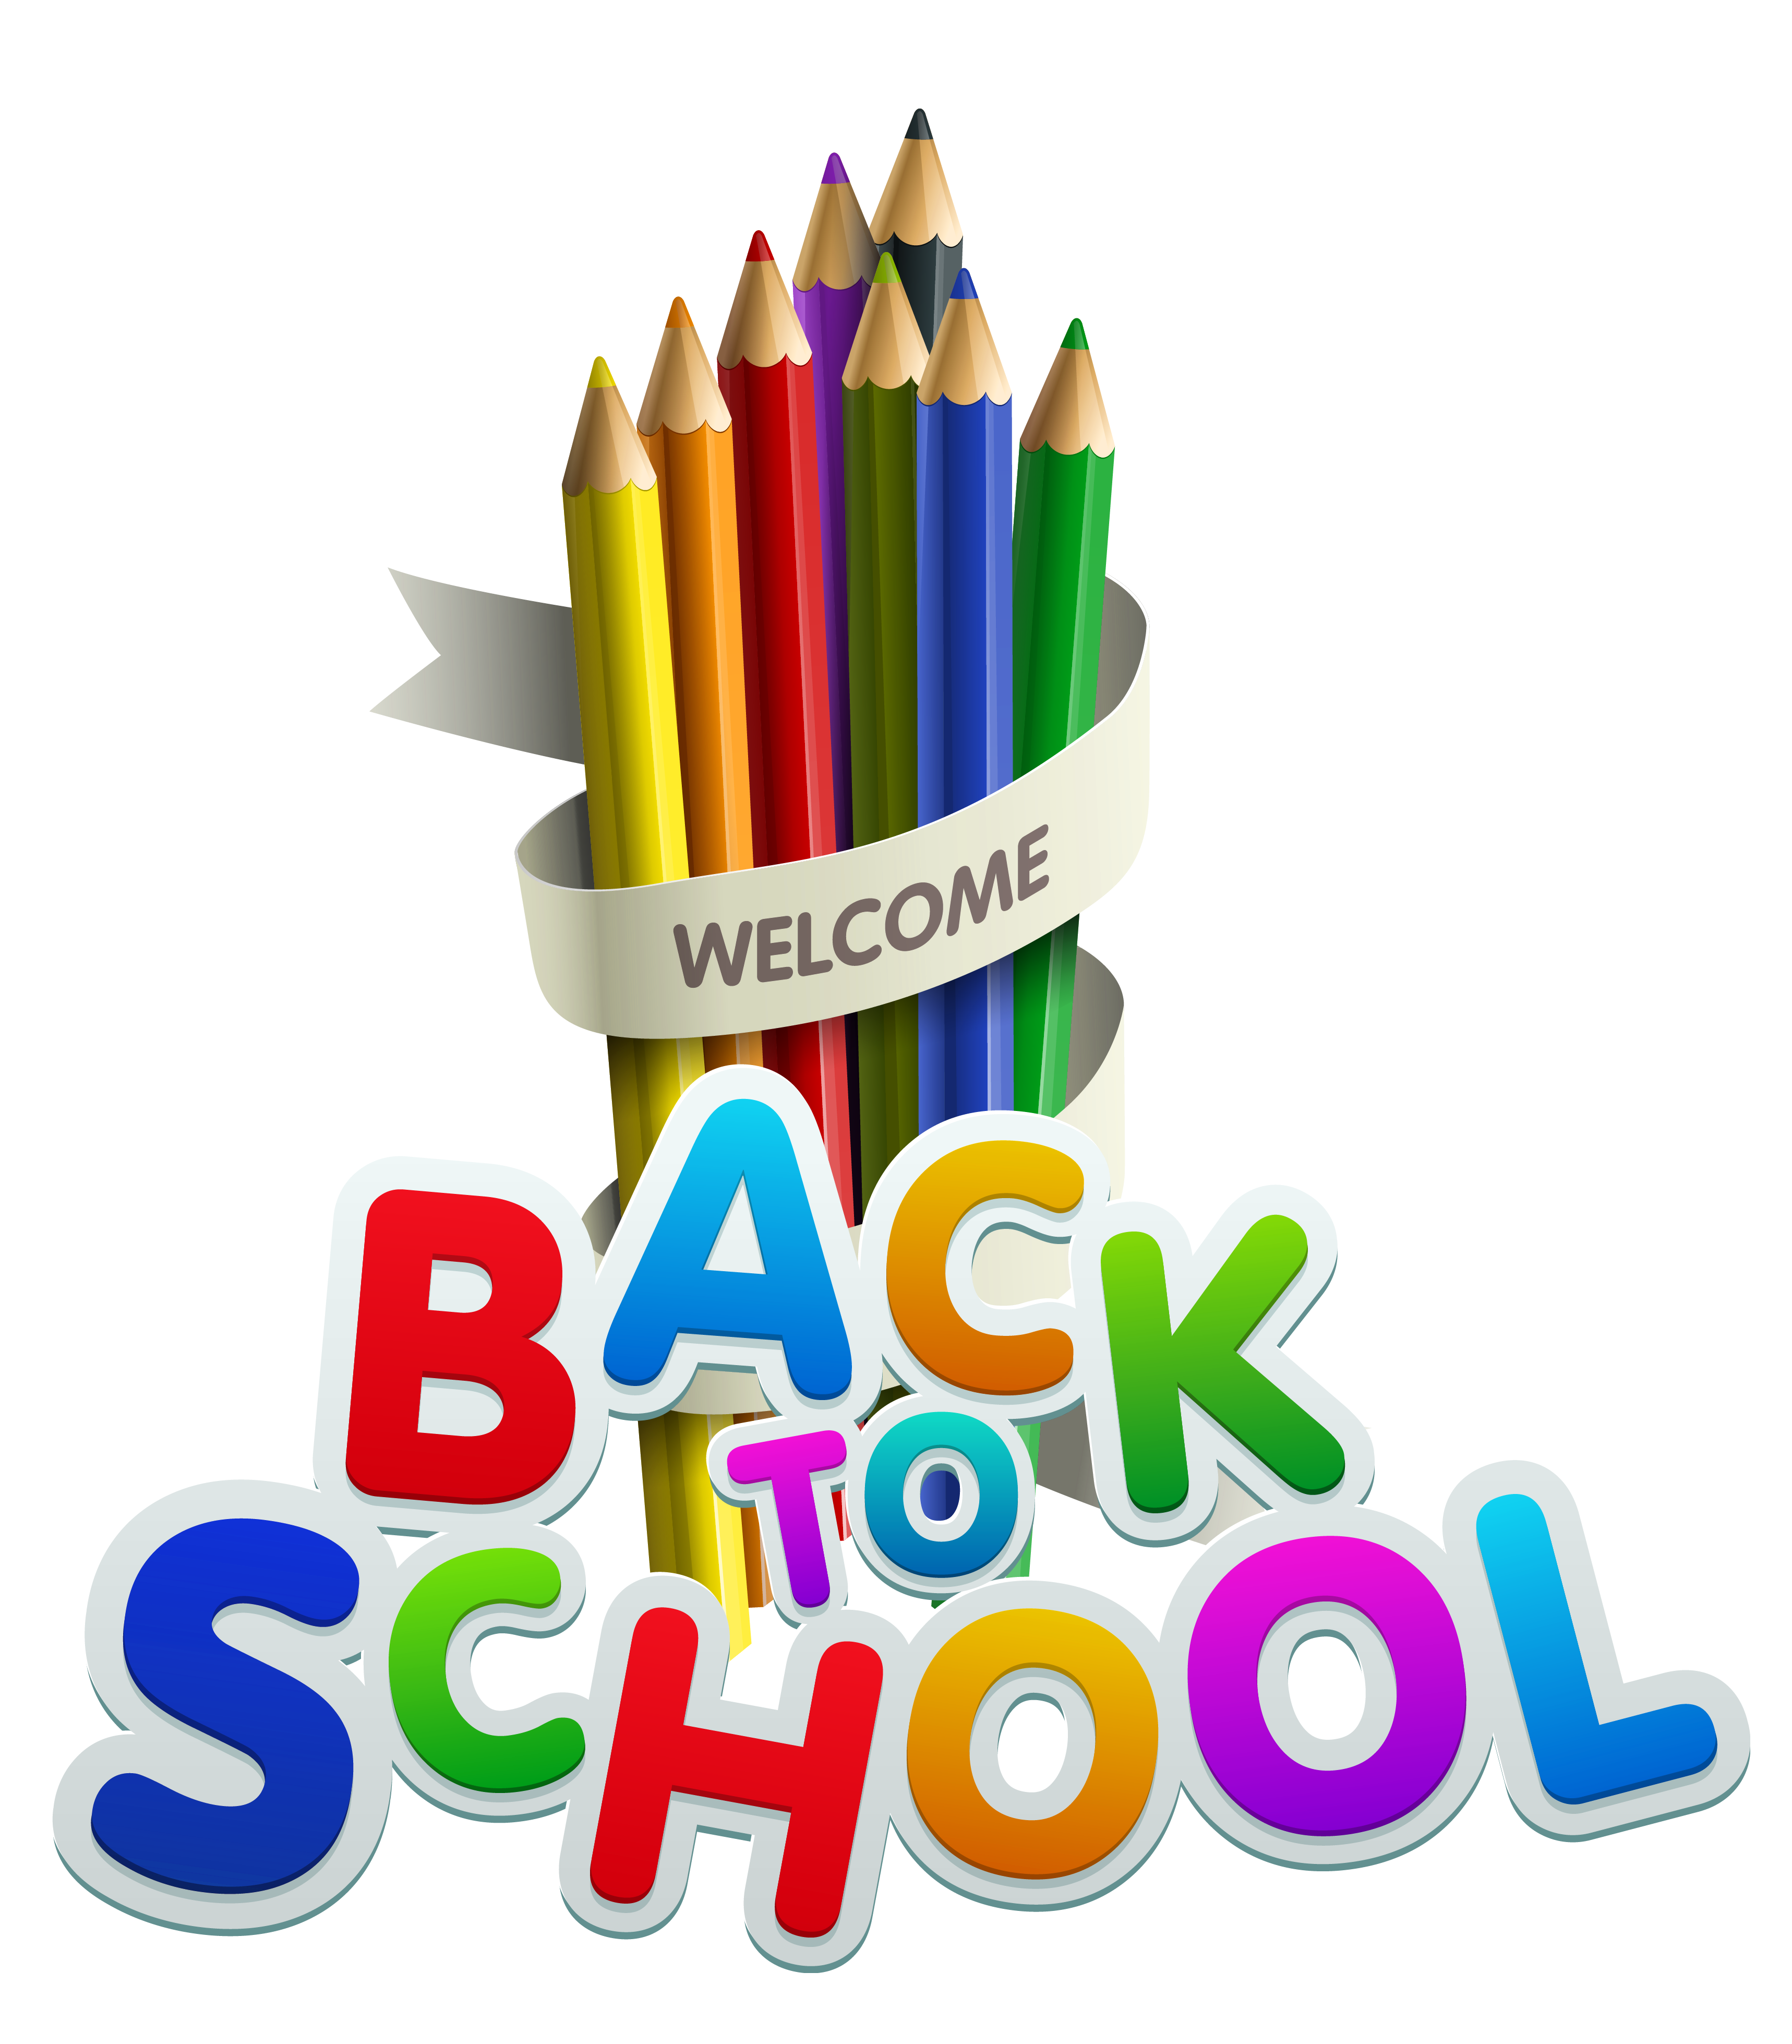 Welcome-Back-To-School-Color-Pencils-Clipart.png (3435×3917)